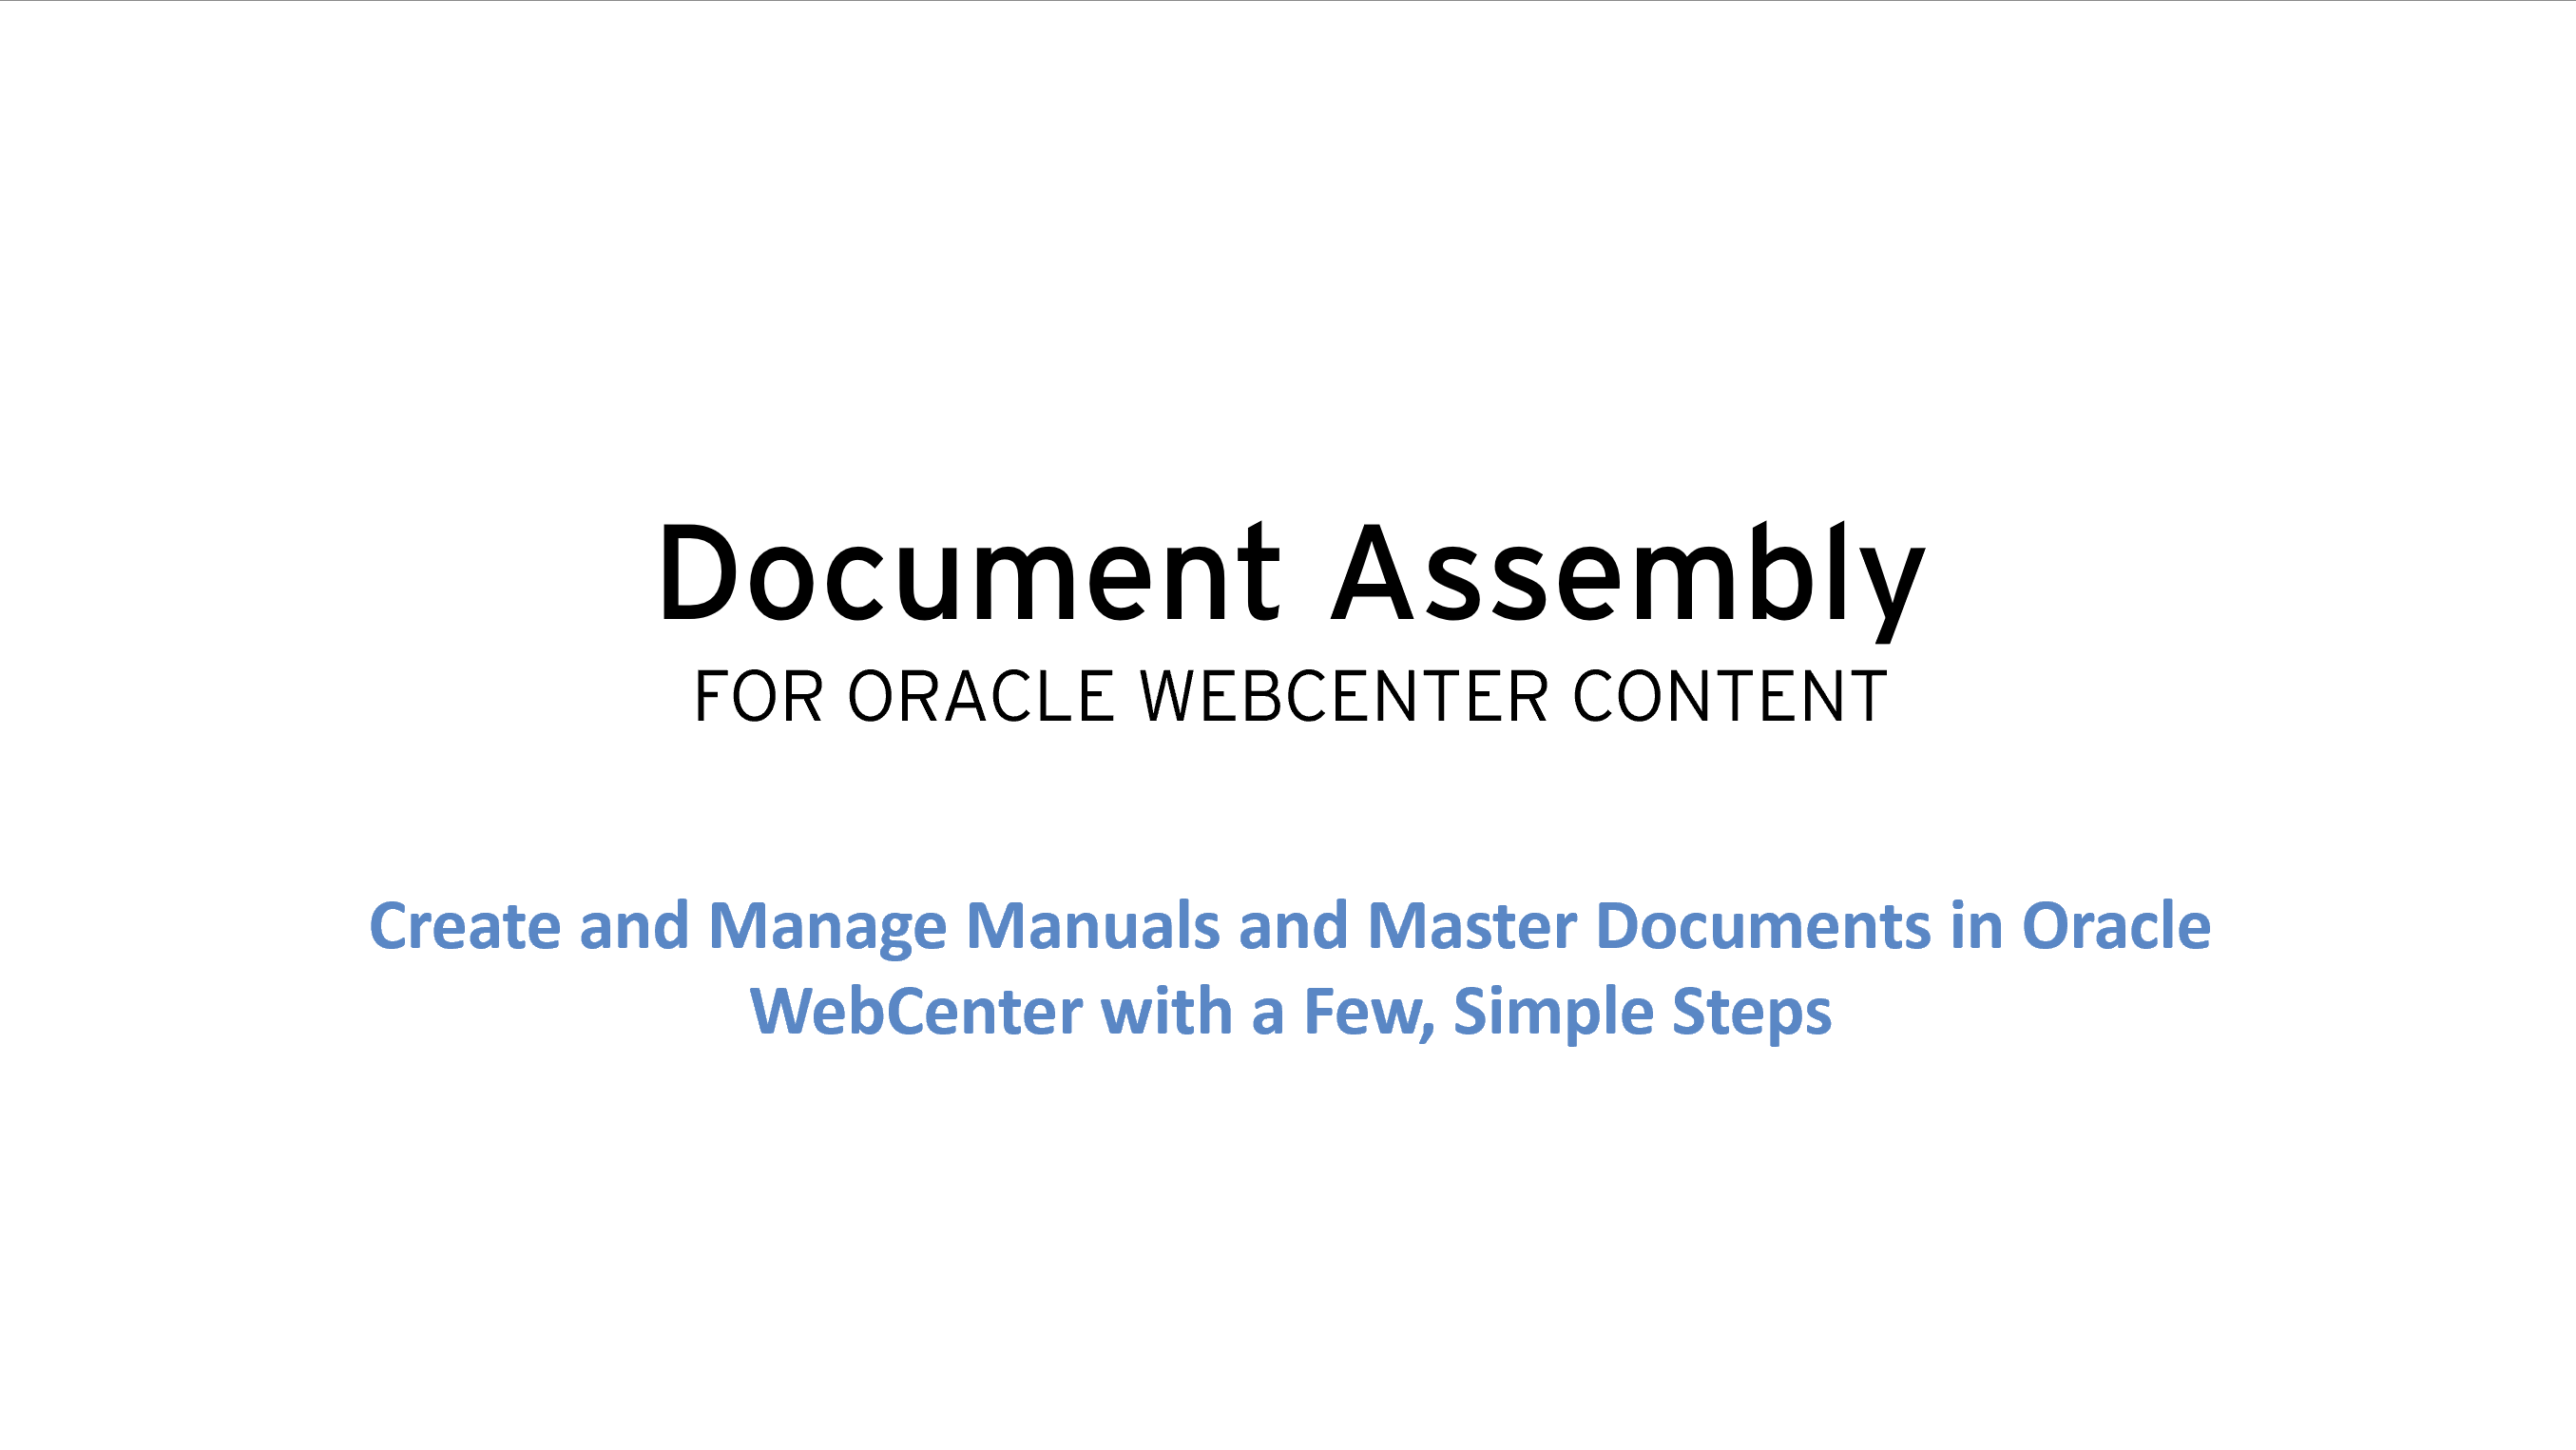 Text stating: Document Assembly for Oracle WebCenter Content